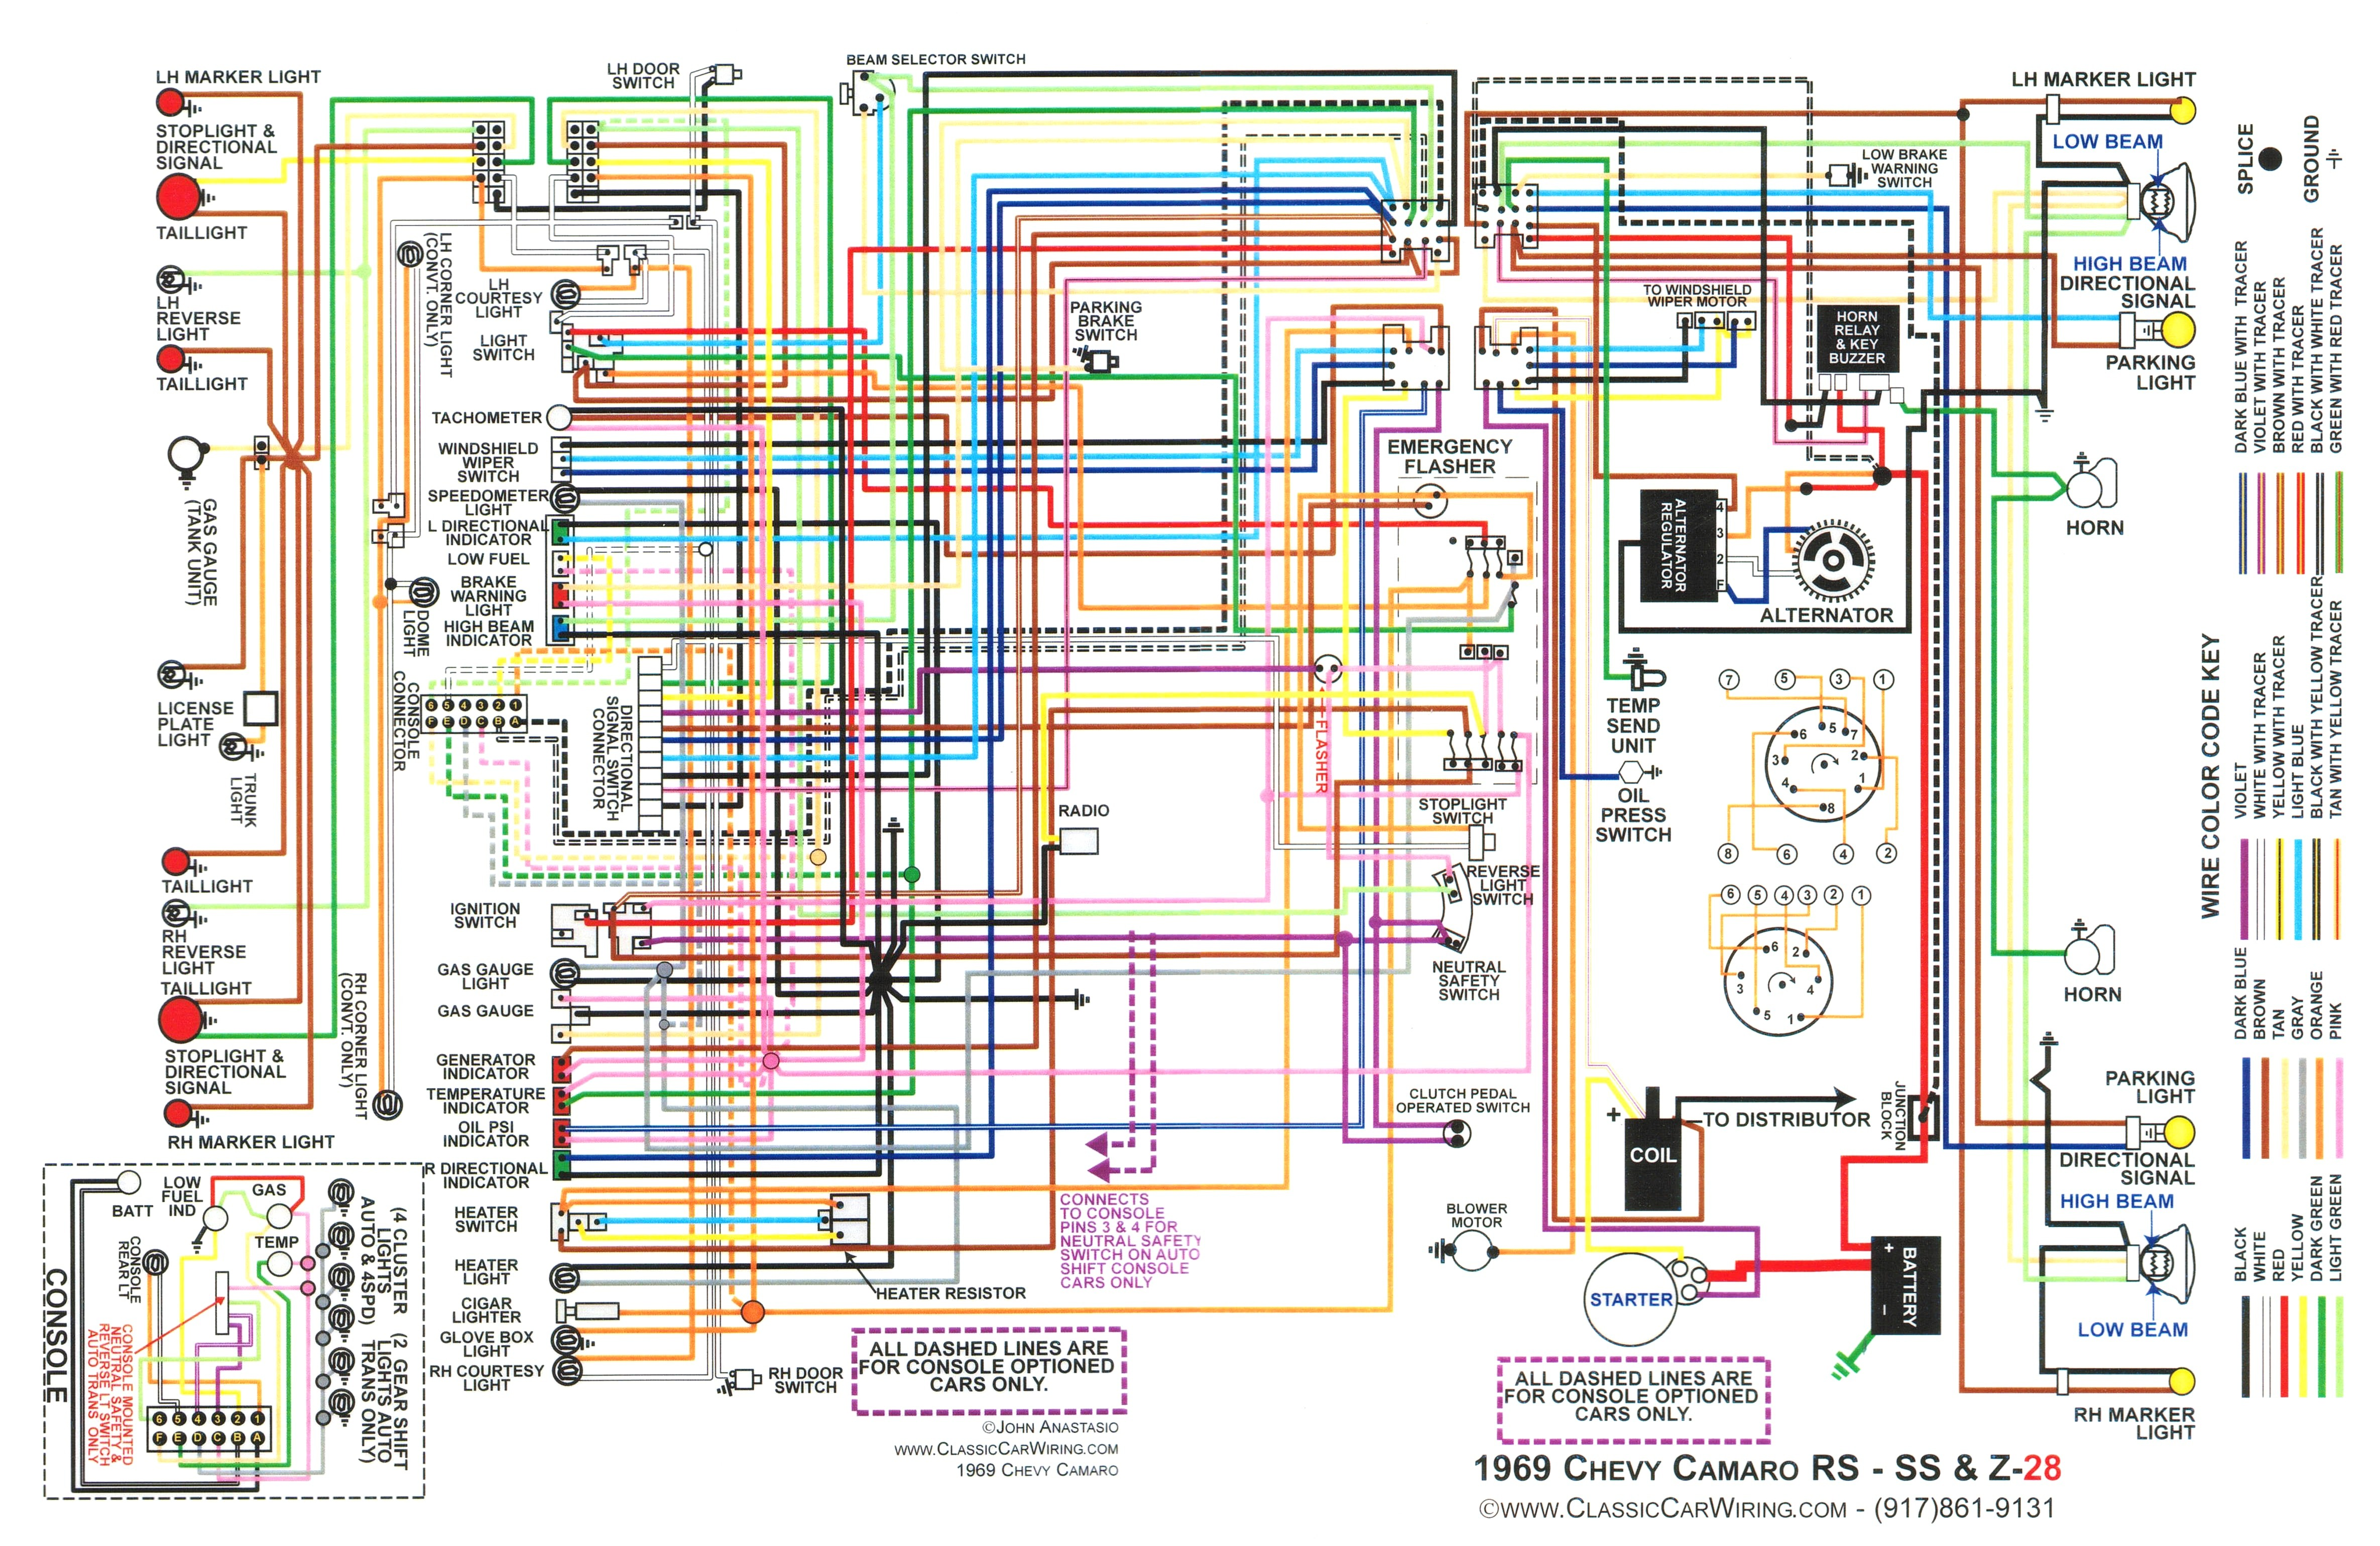 1967 chevelle column wiring diagram wiring librarycamaro wiring harness diagram auto electrical wiring diagram 69 camaro wiring 1972 camaro ac wiring